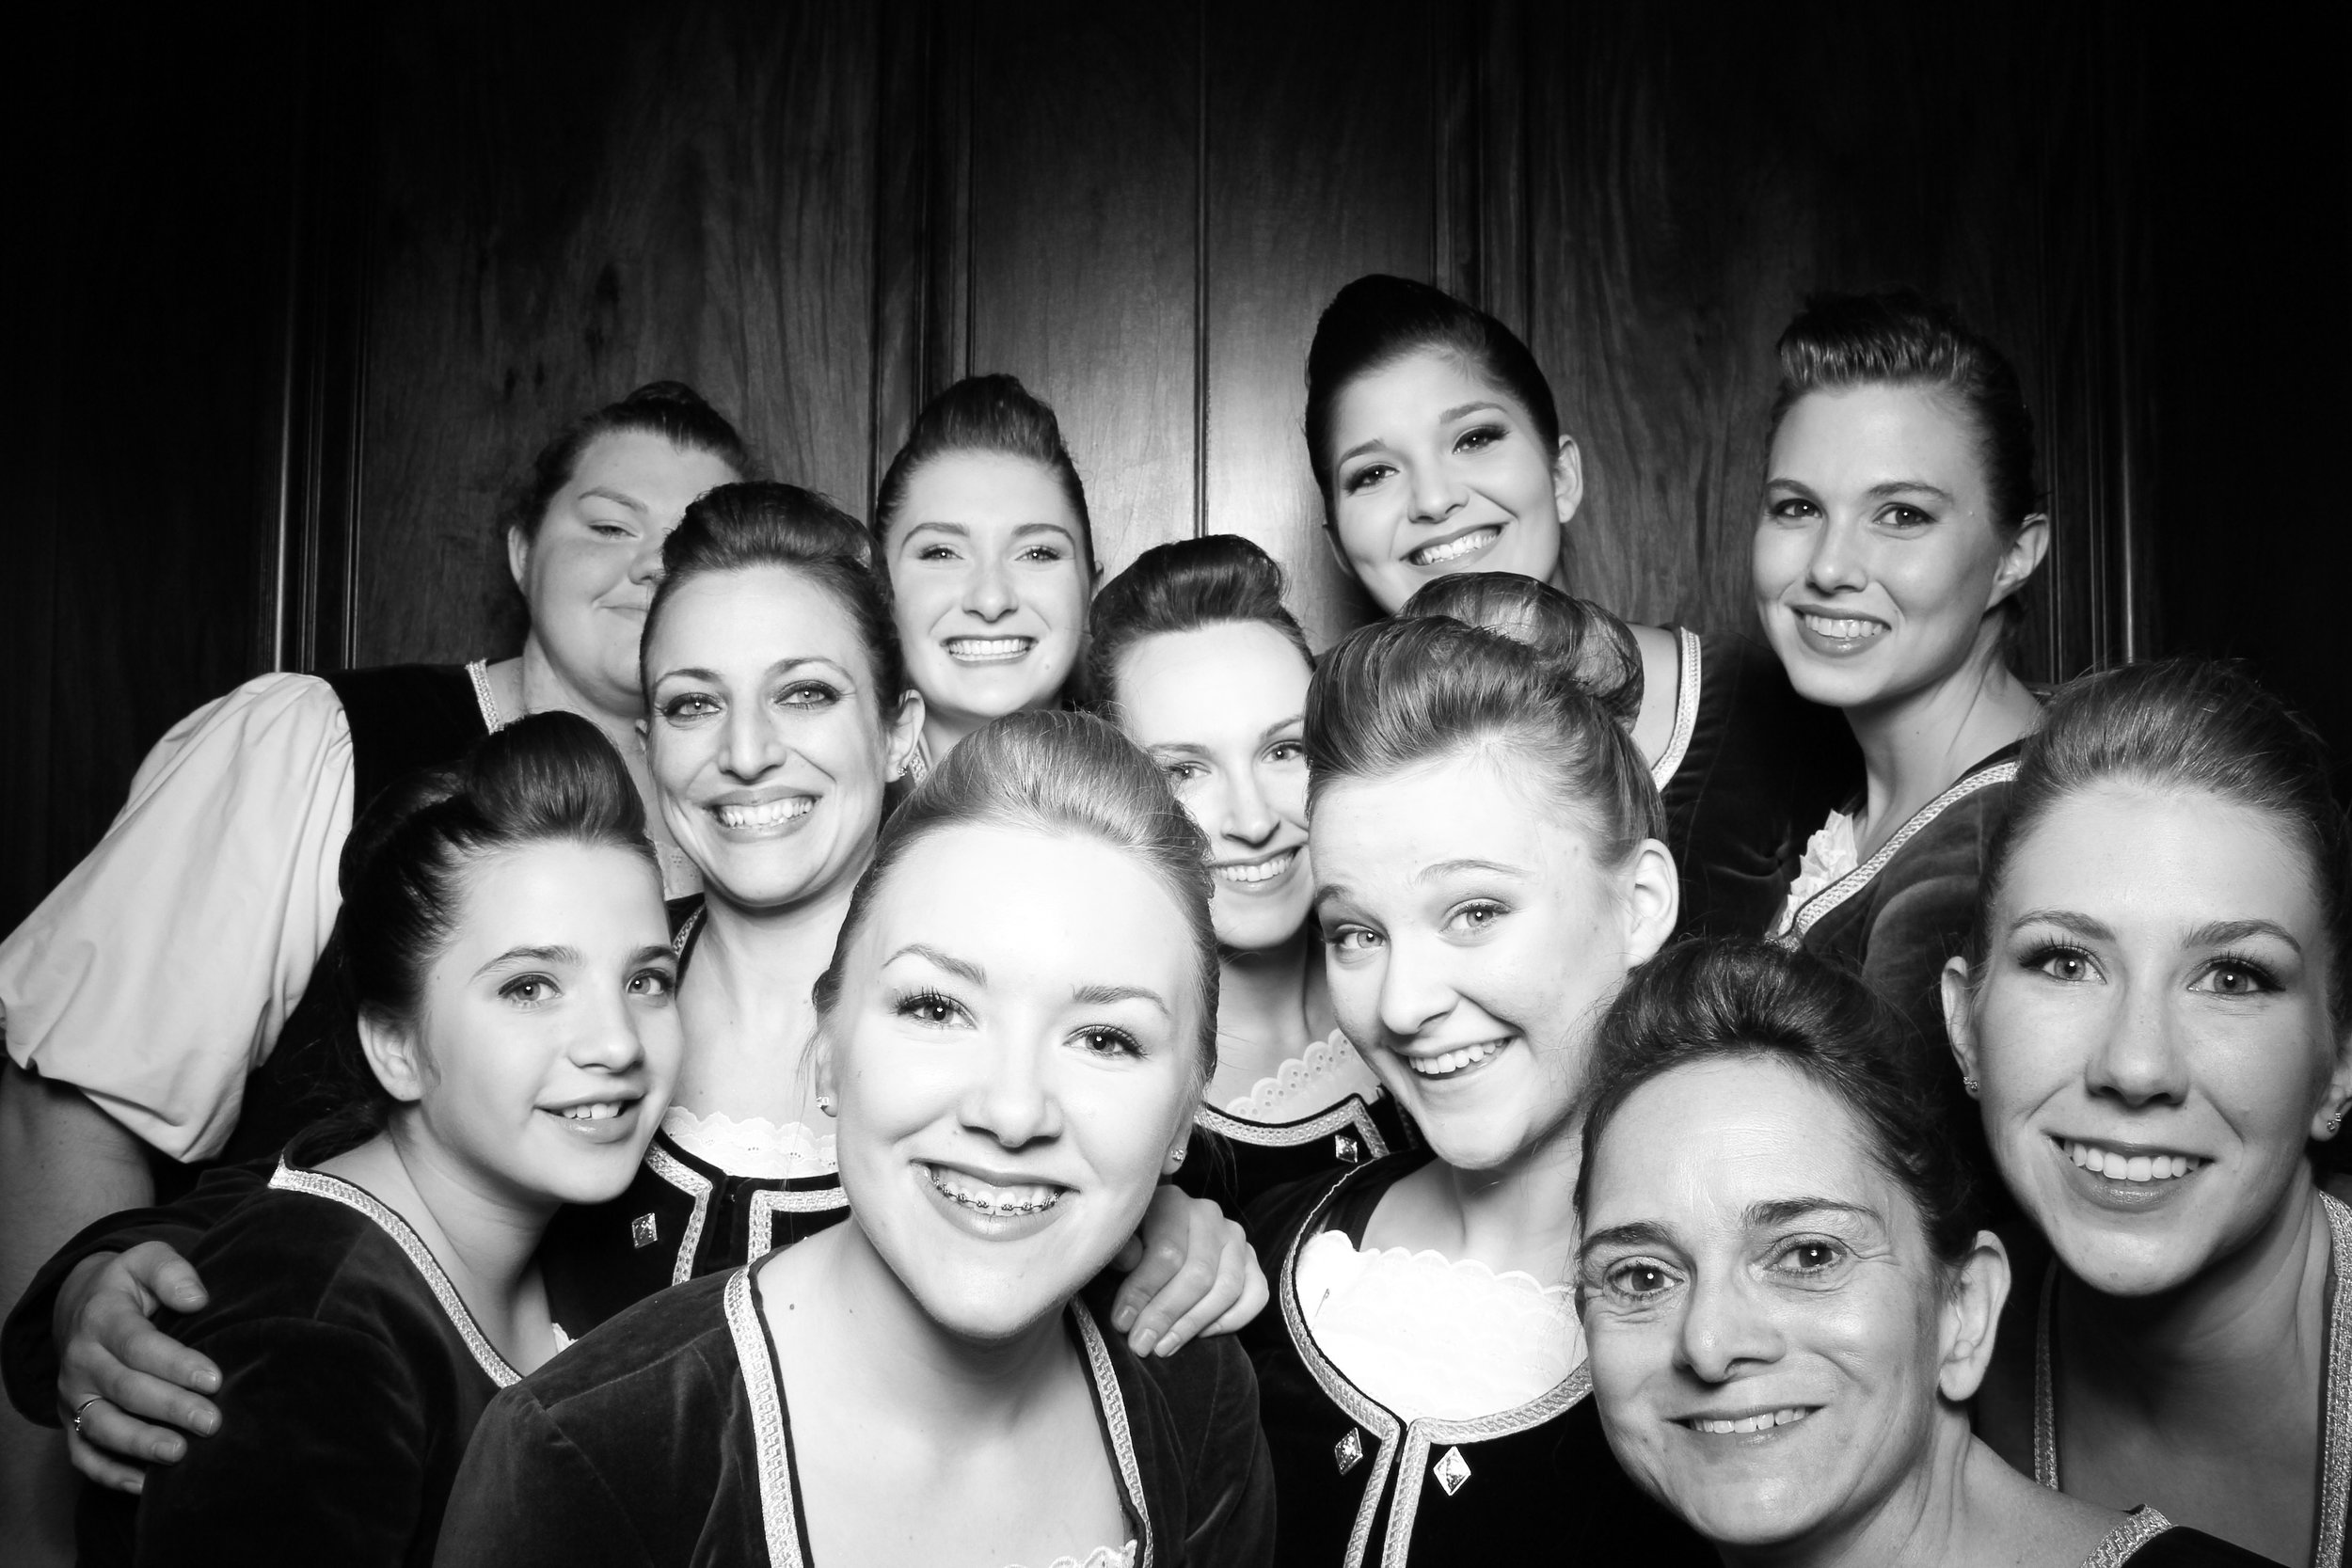 The Scottish Dancers pose for a photo booth picture in Gar Memorial Hall.